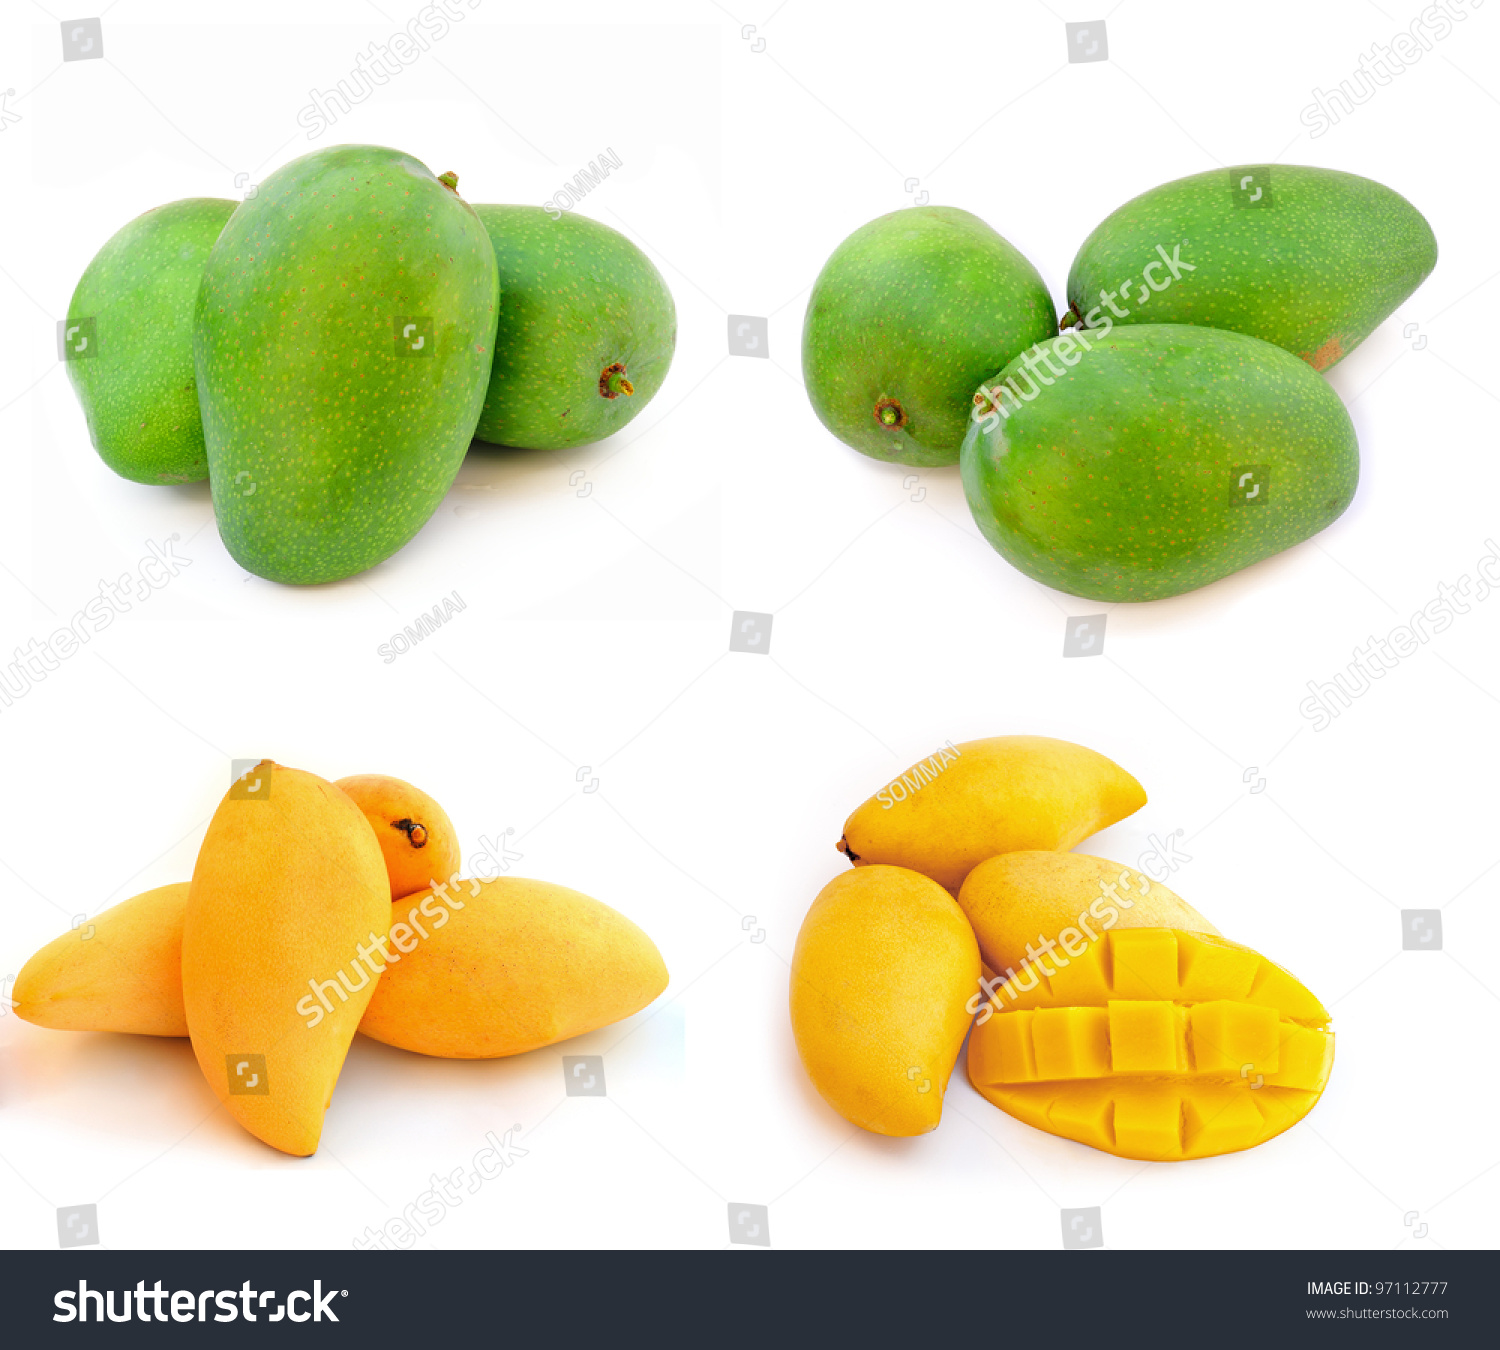 yellow and green mango isolated on a white background